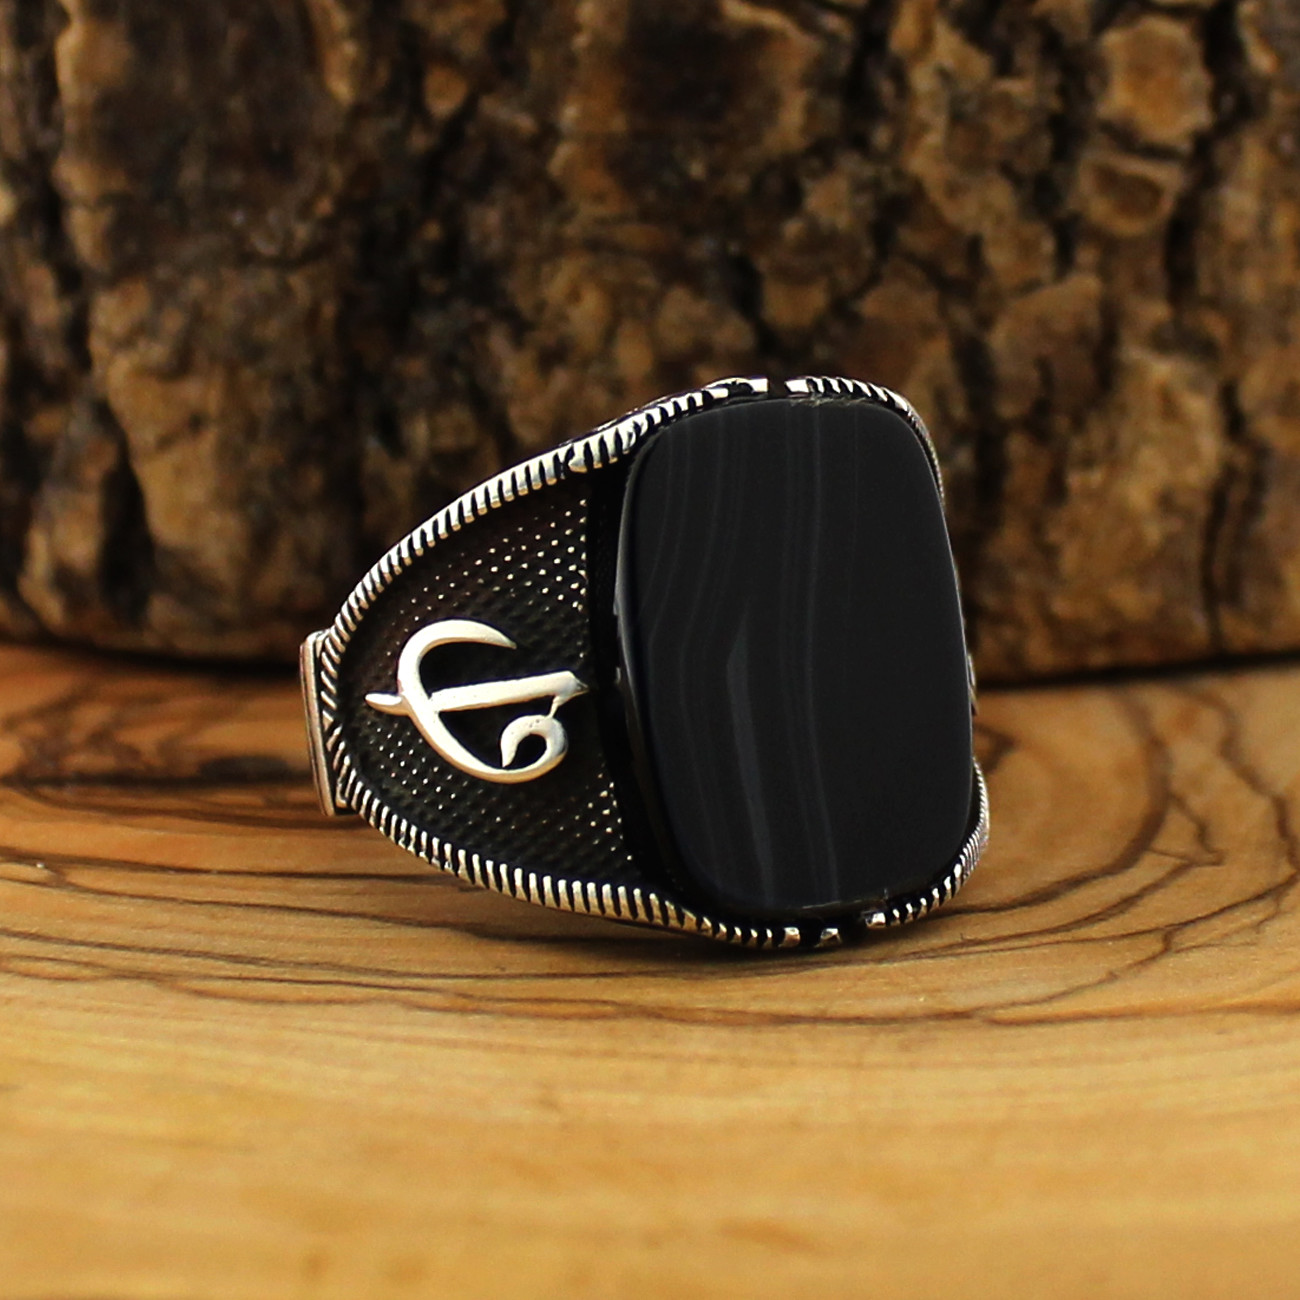 925 Sterling Silver Ring for Men Solimani Black Agate Stone Onyx Jewelry fashion vintage Gift Rings All Size Made in turkey